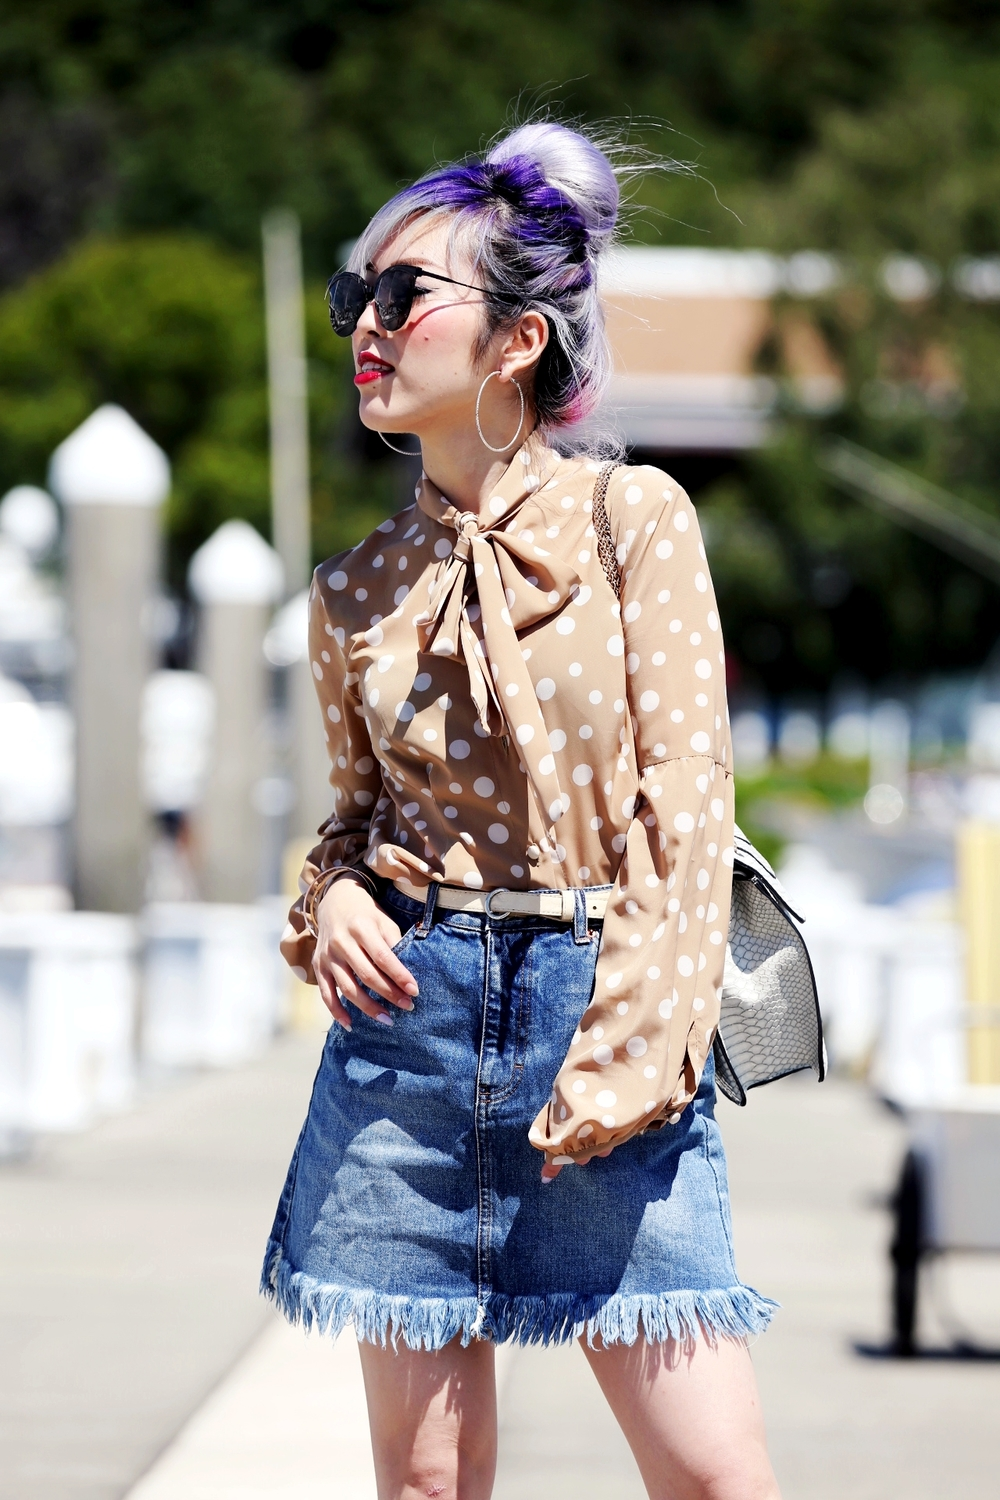 Yuna Yang Collection Polkadot Trench Coat & Blouse_ASOS Frayed Hem Denim Mini Skirt_Shoe Dazzle Gold Lace Up Wedge Sandals_Mellow World Bag_No Weekends Sunglasses_Lavender Hair_Messy Bun Hairstyle_Aikas Love Closet_Seattle Fashion Blogger from Japan